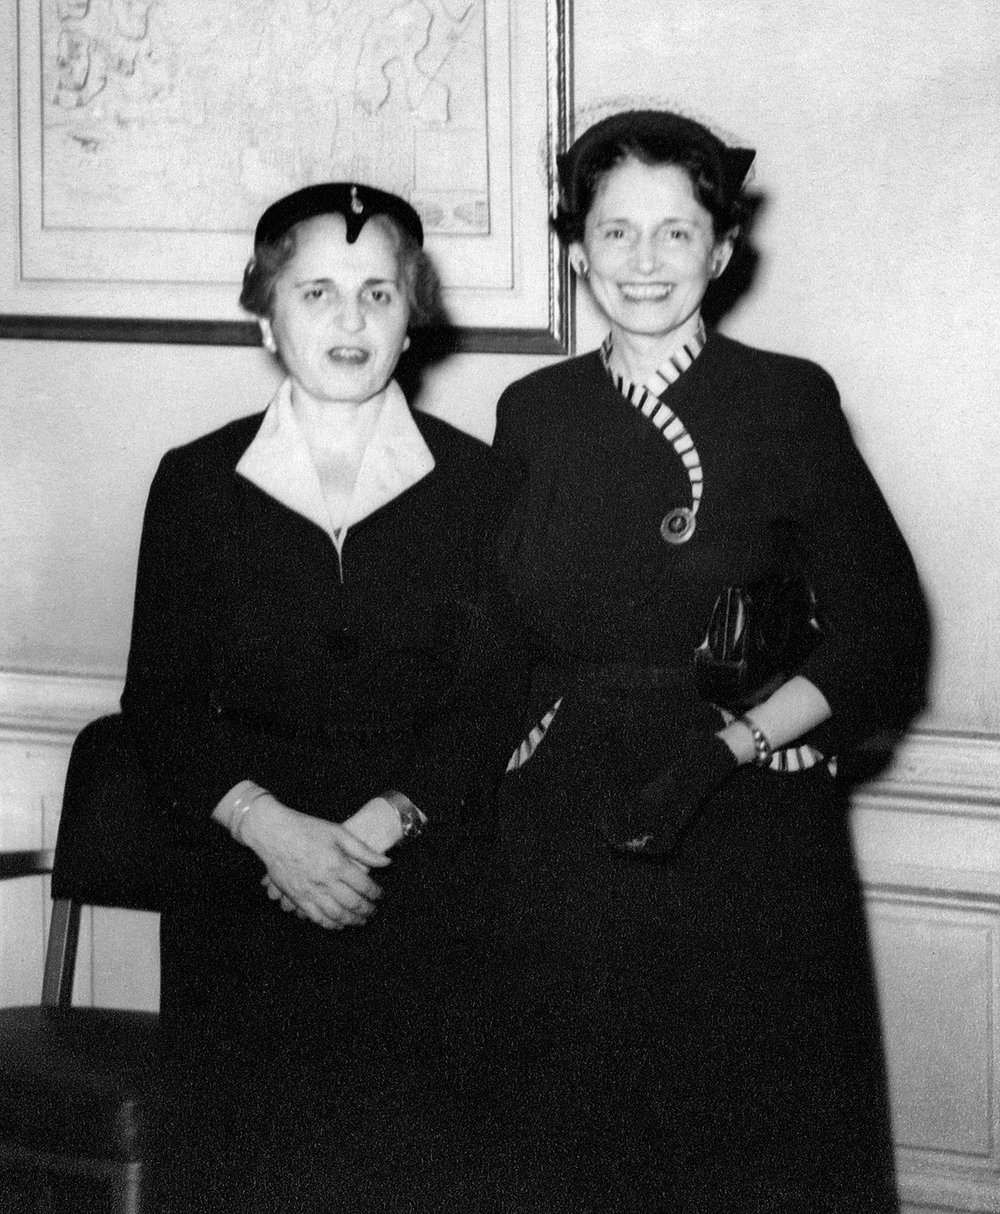 Esther Lazarus and Sylvia Adalman